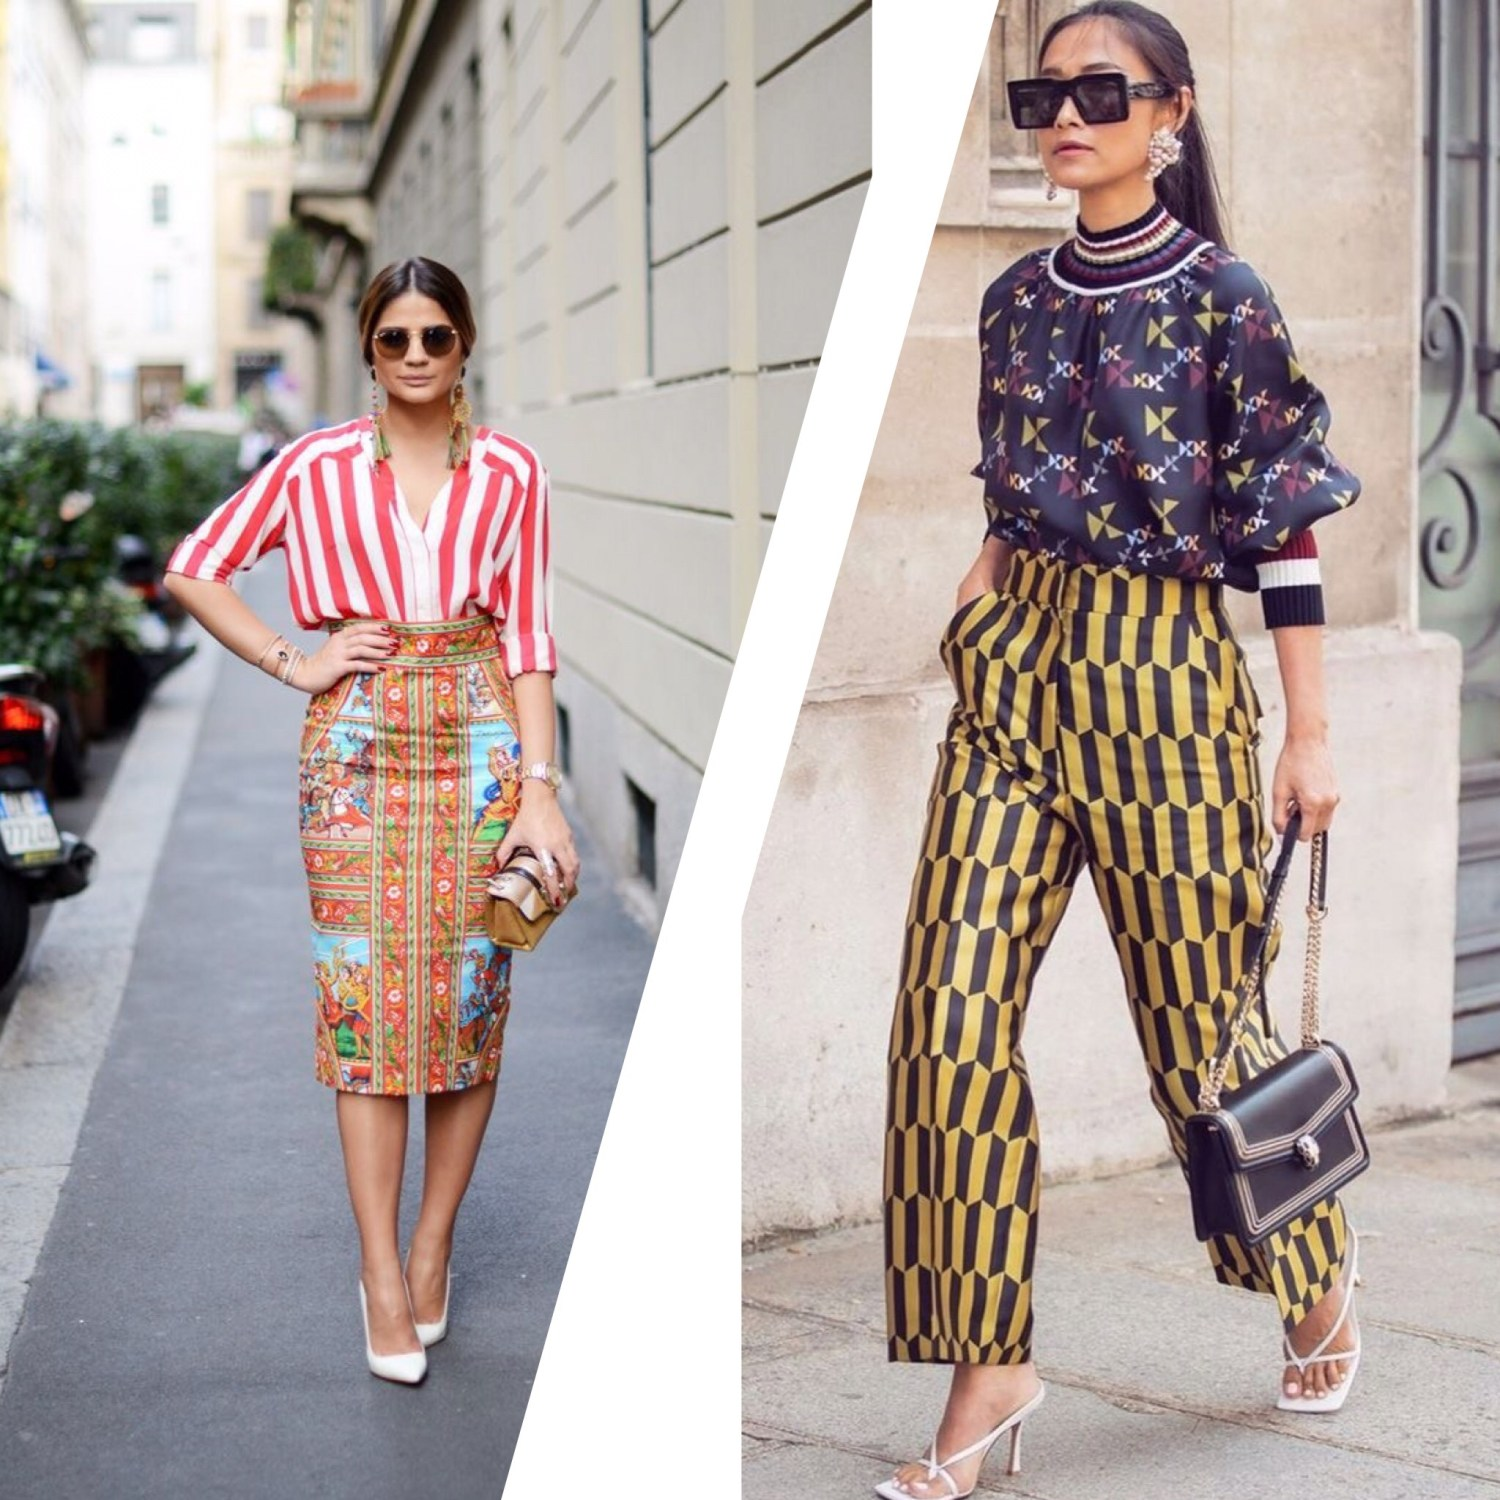 Pictures of how Ladies mix Prints and Patterns